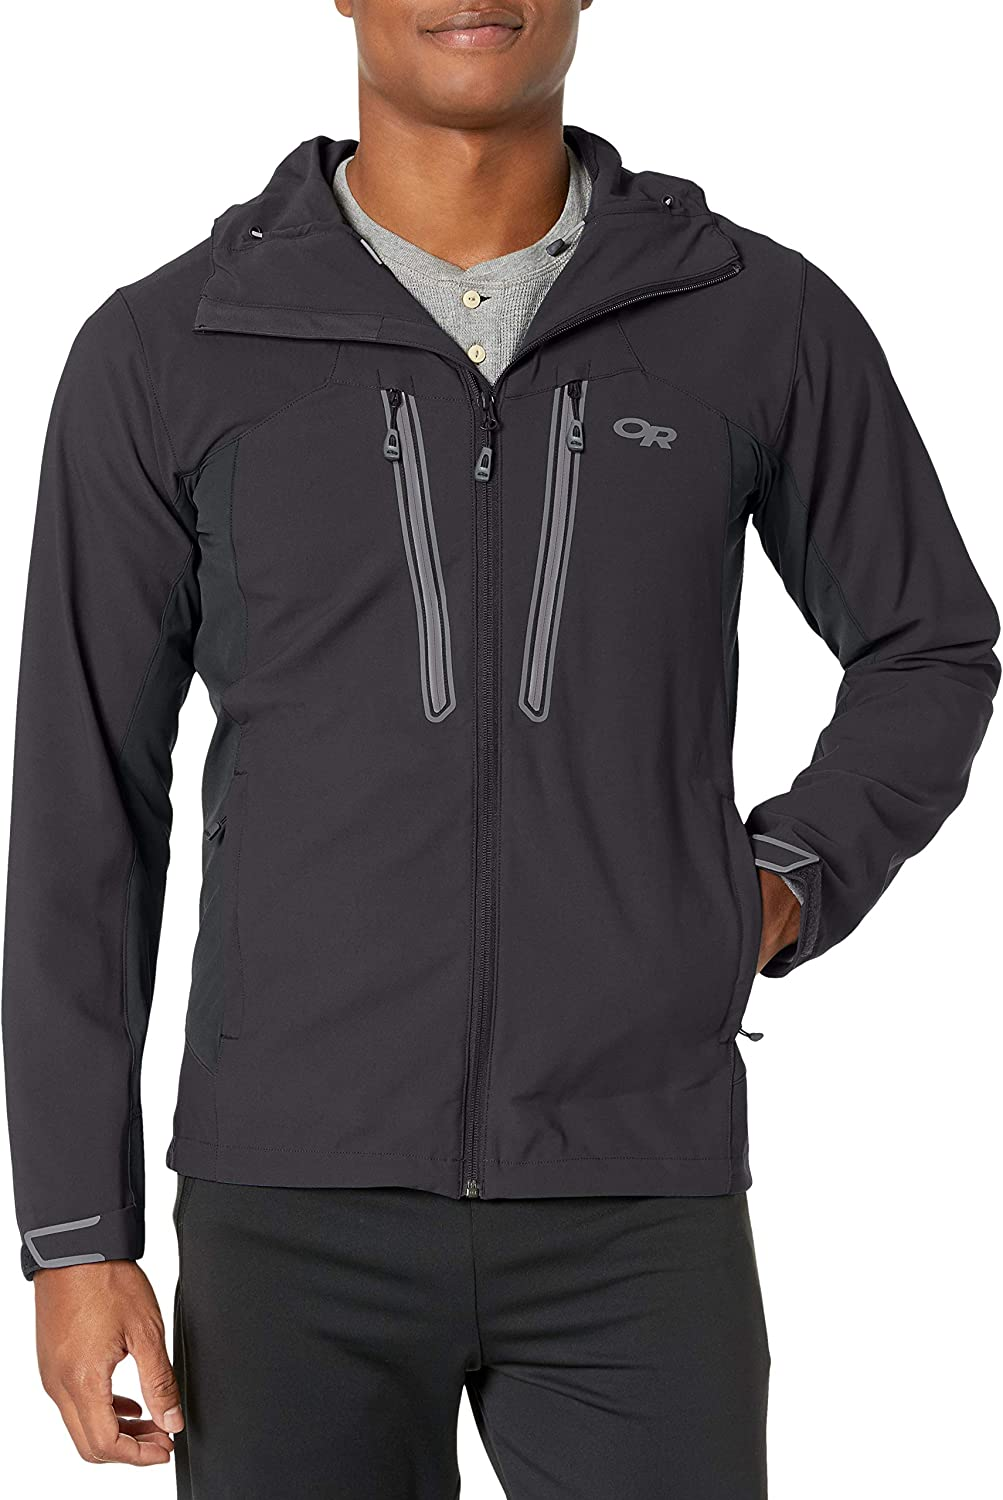 Outdoor Research Men's Ferrosi Summit Hooded Jacket